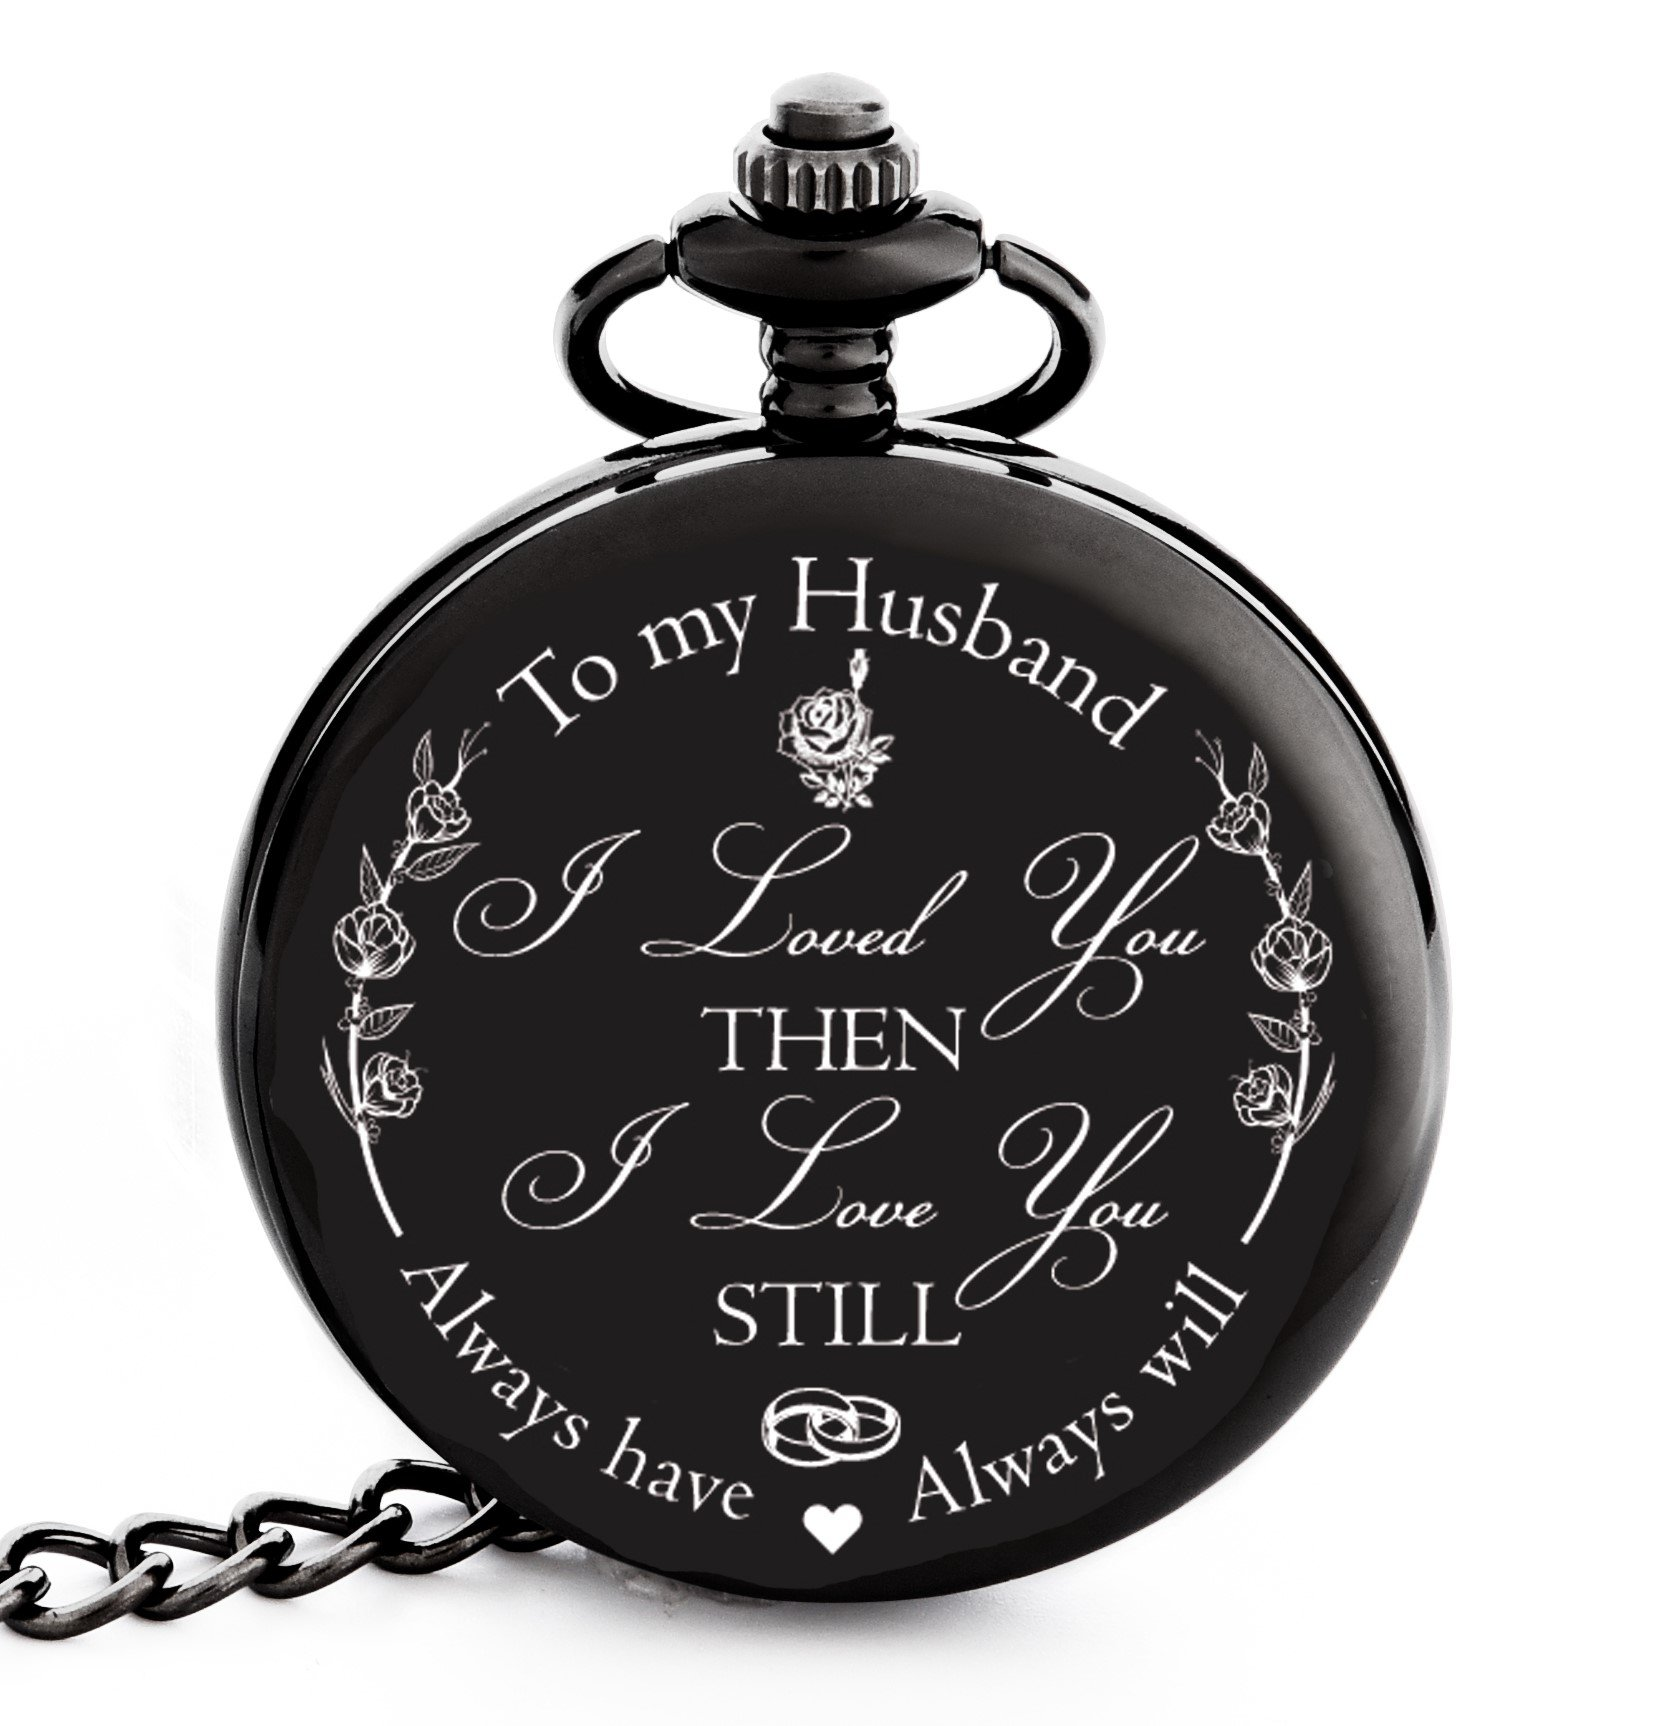 Valentines Gift for Husband | Anniversary Gifts for Men | Engraved u201cTo my Husbandu201d  sc 1 st  Amazon.com & Best Christmas Gifts for Husband: Amazon.com